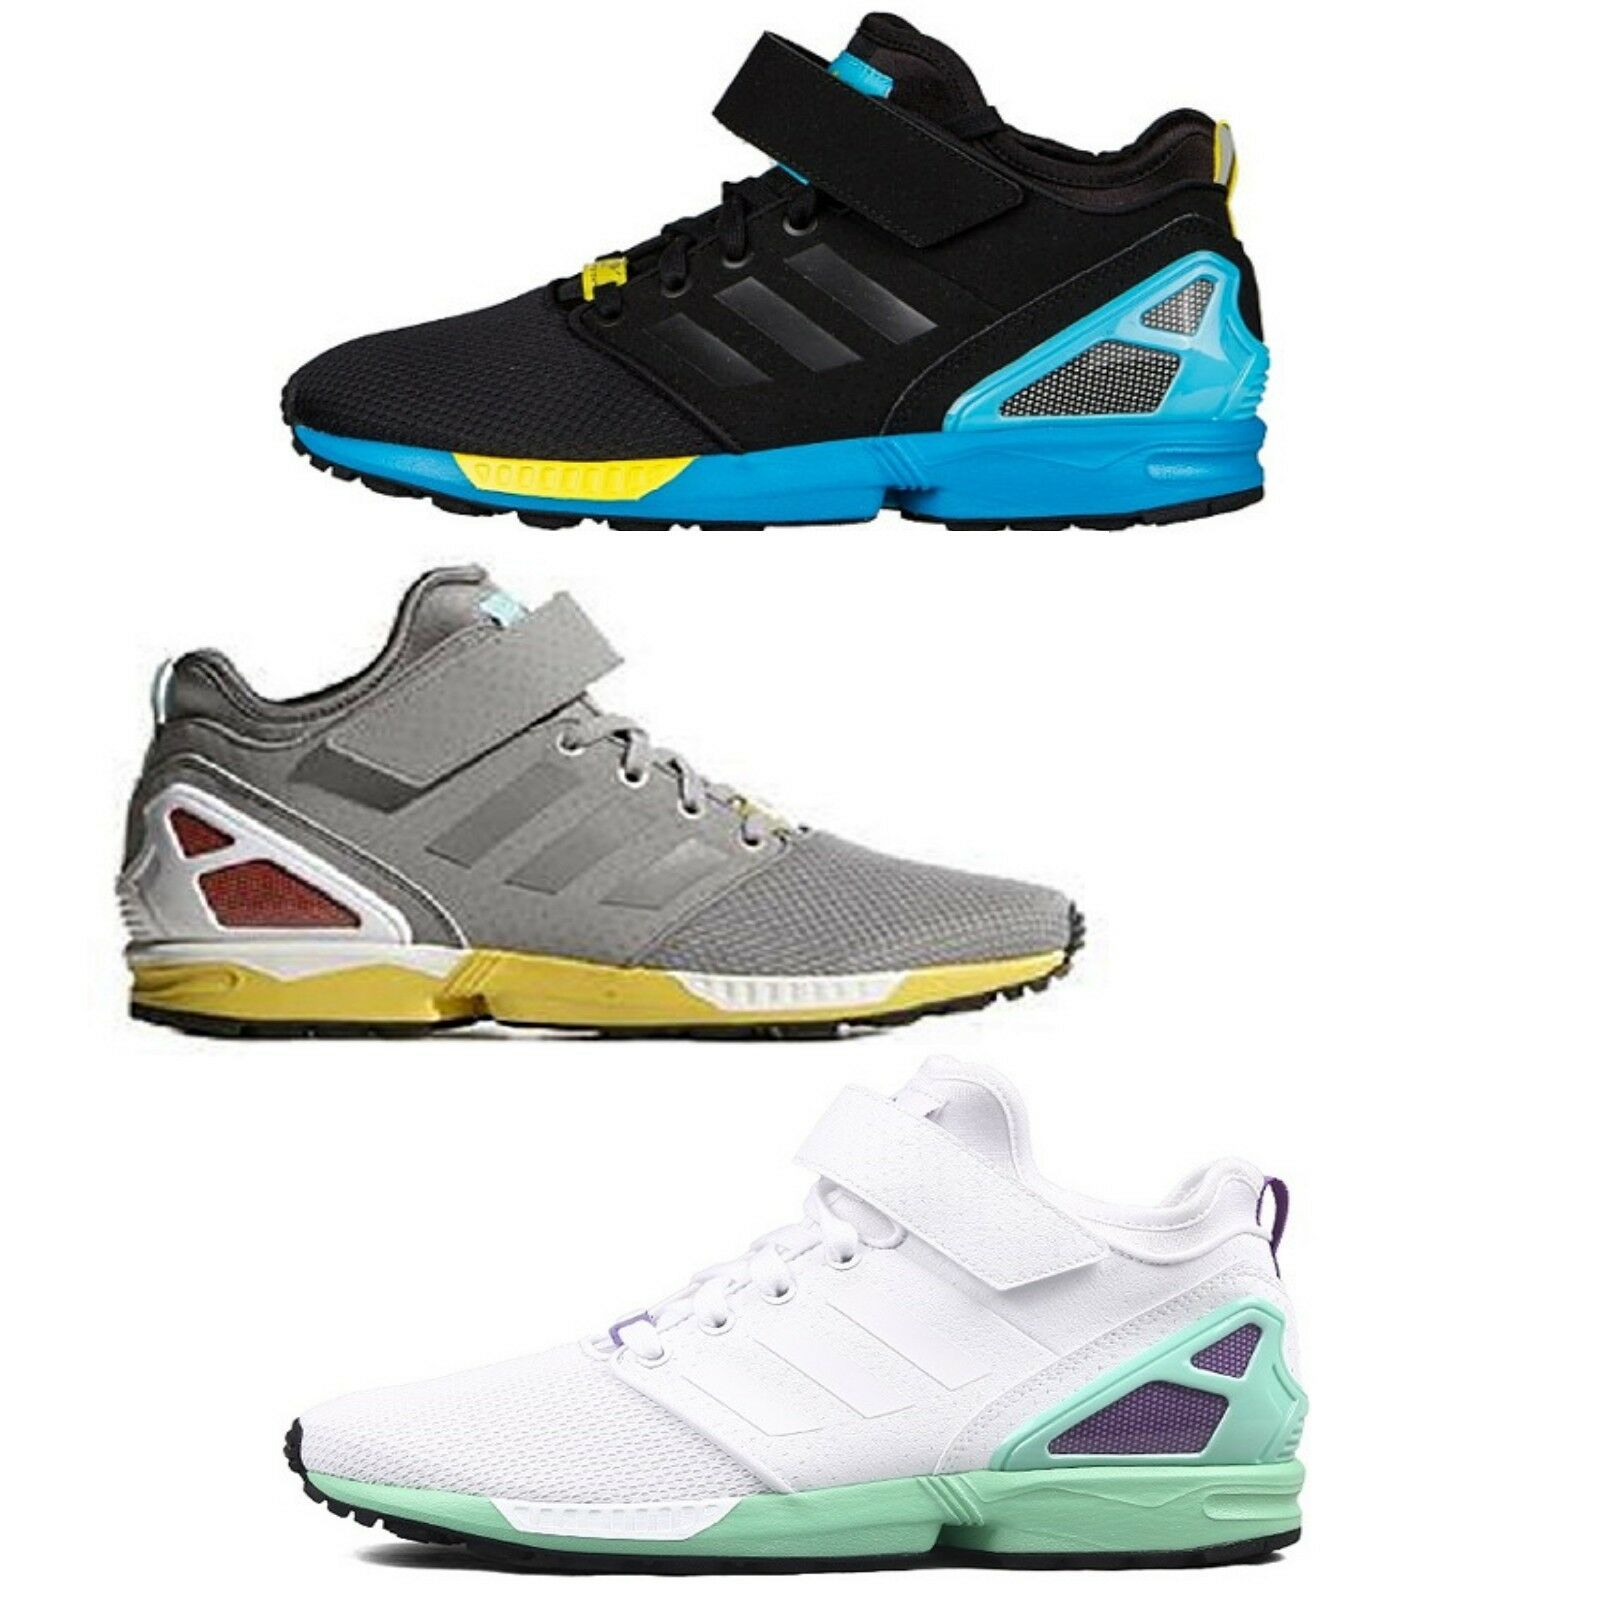 ADIDAS TORSION ZX FLUX NPS MID 8000 40 -49 NY 700 750 9000 adiren